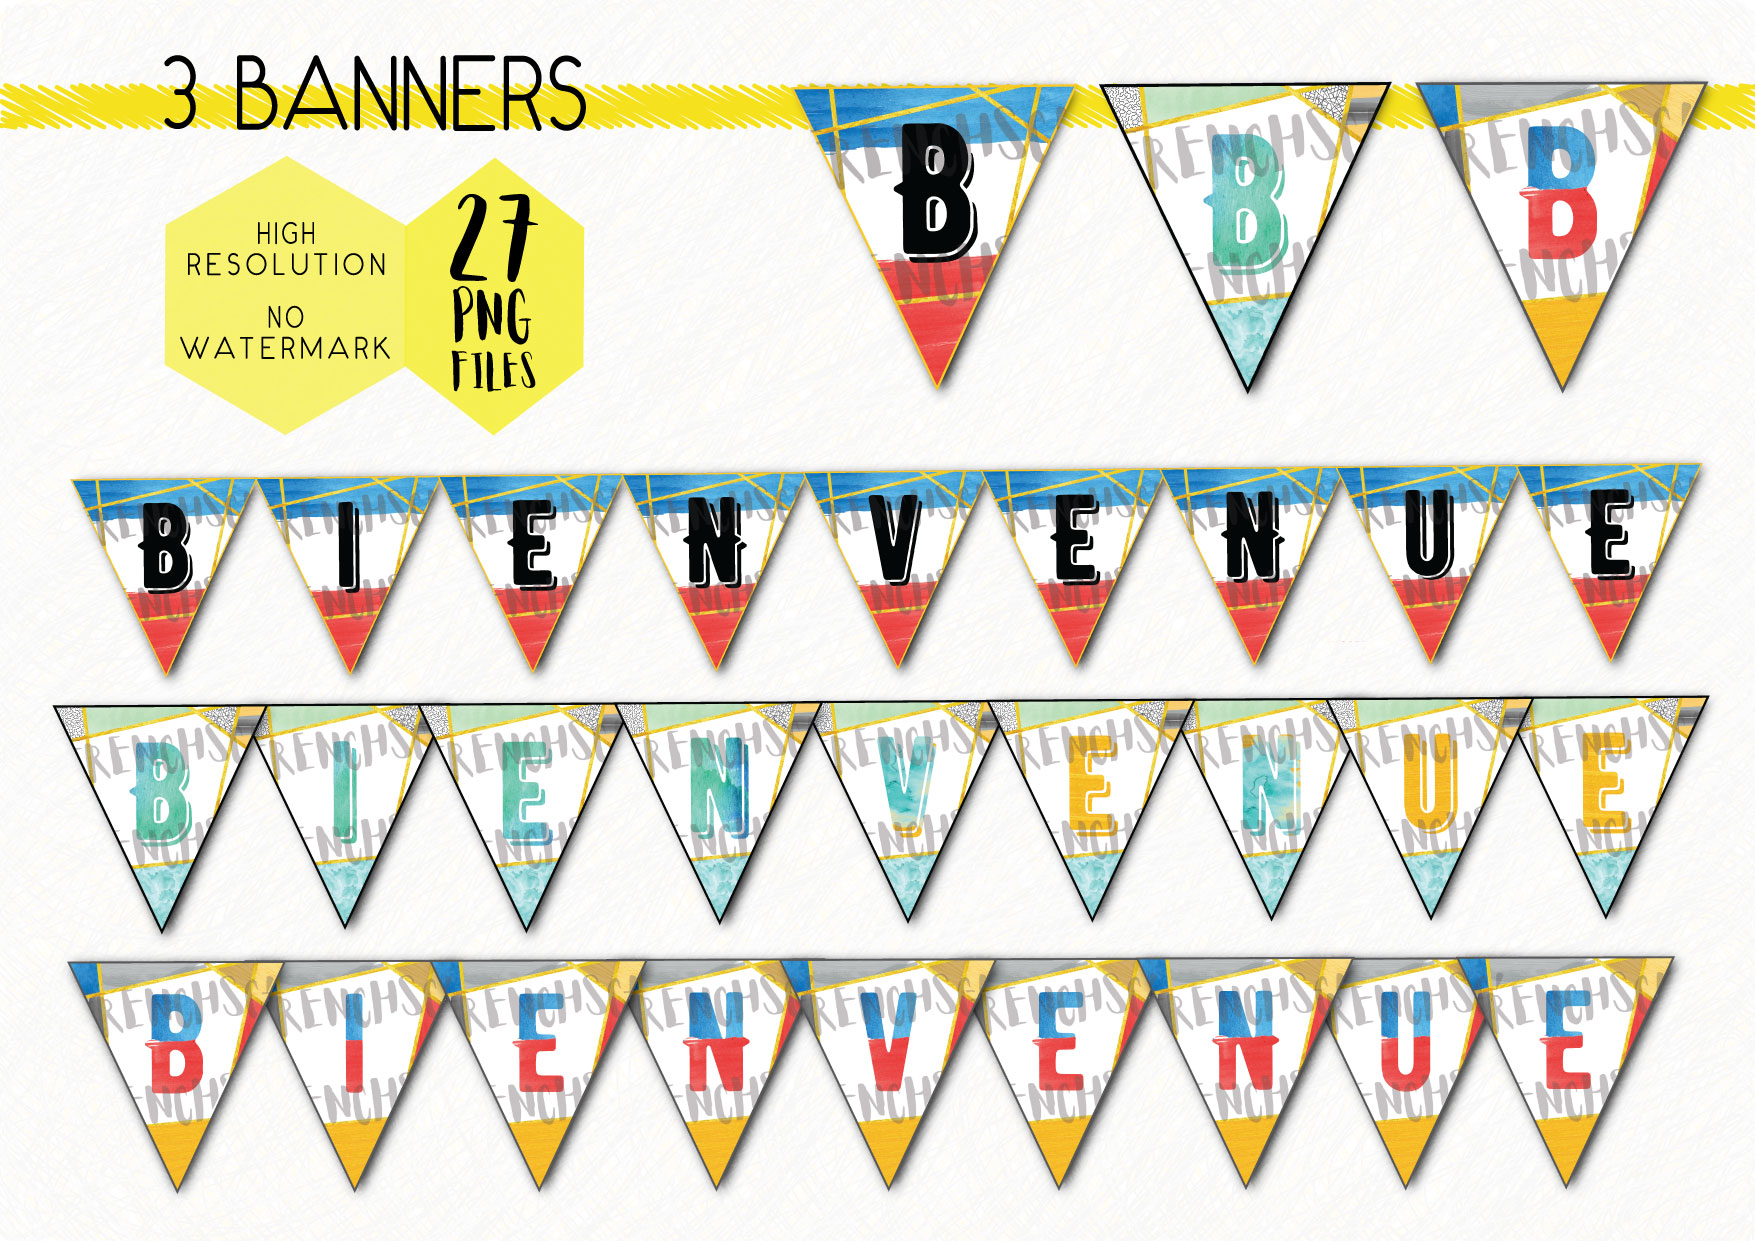 French Bienvenue Classroom Decor Set 3 Posters 3 Banners Printable Display Teaching Resources